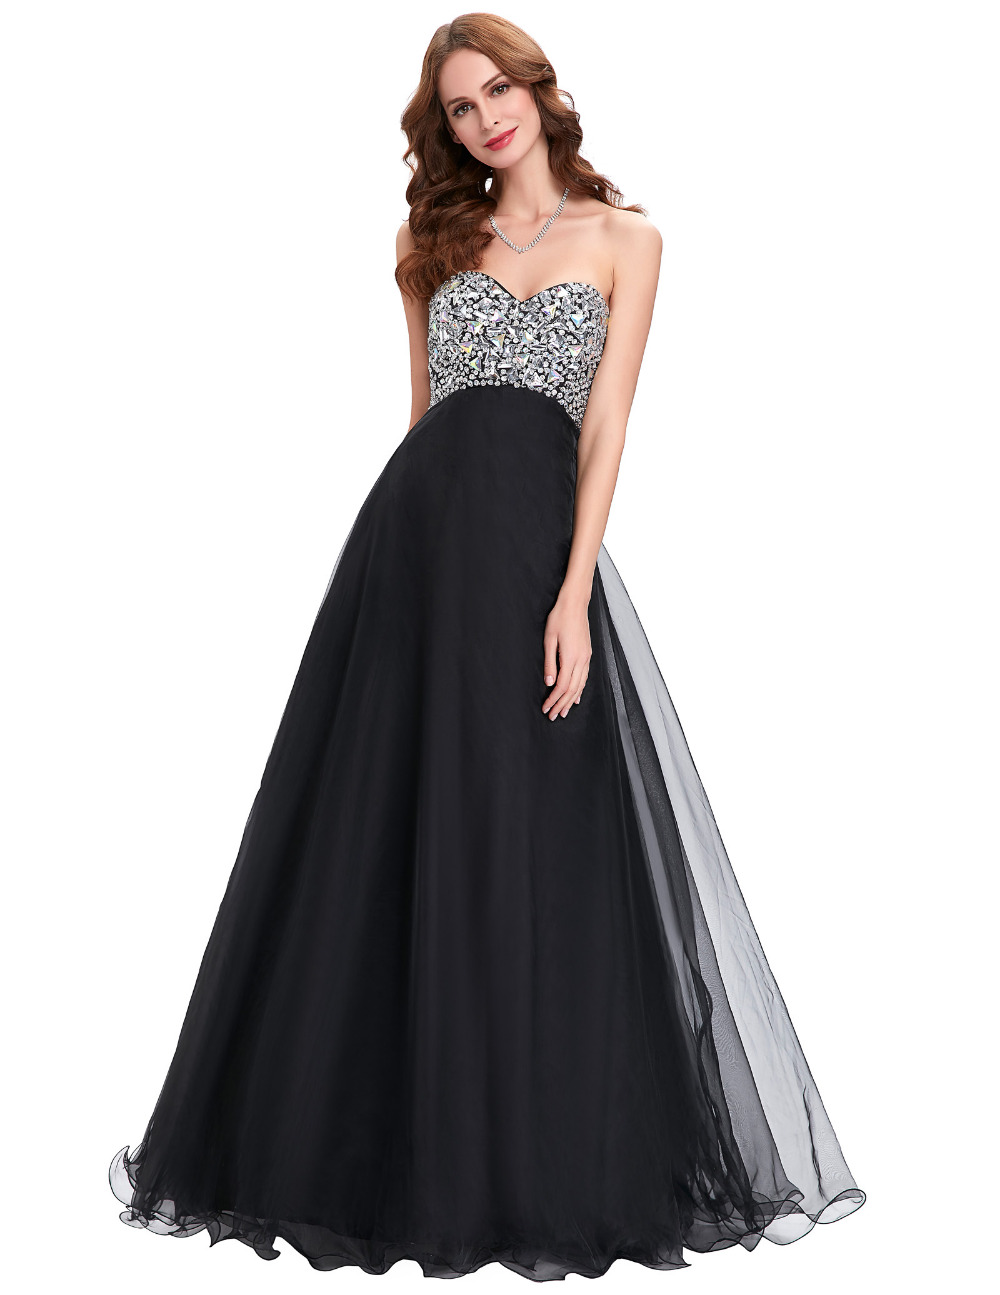 Elegant Black Evening Gown Dress